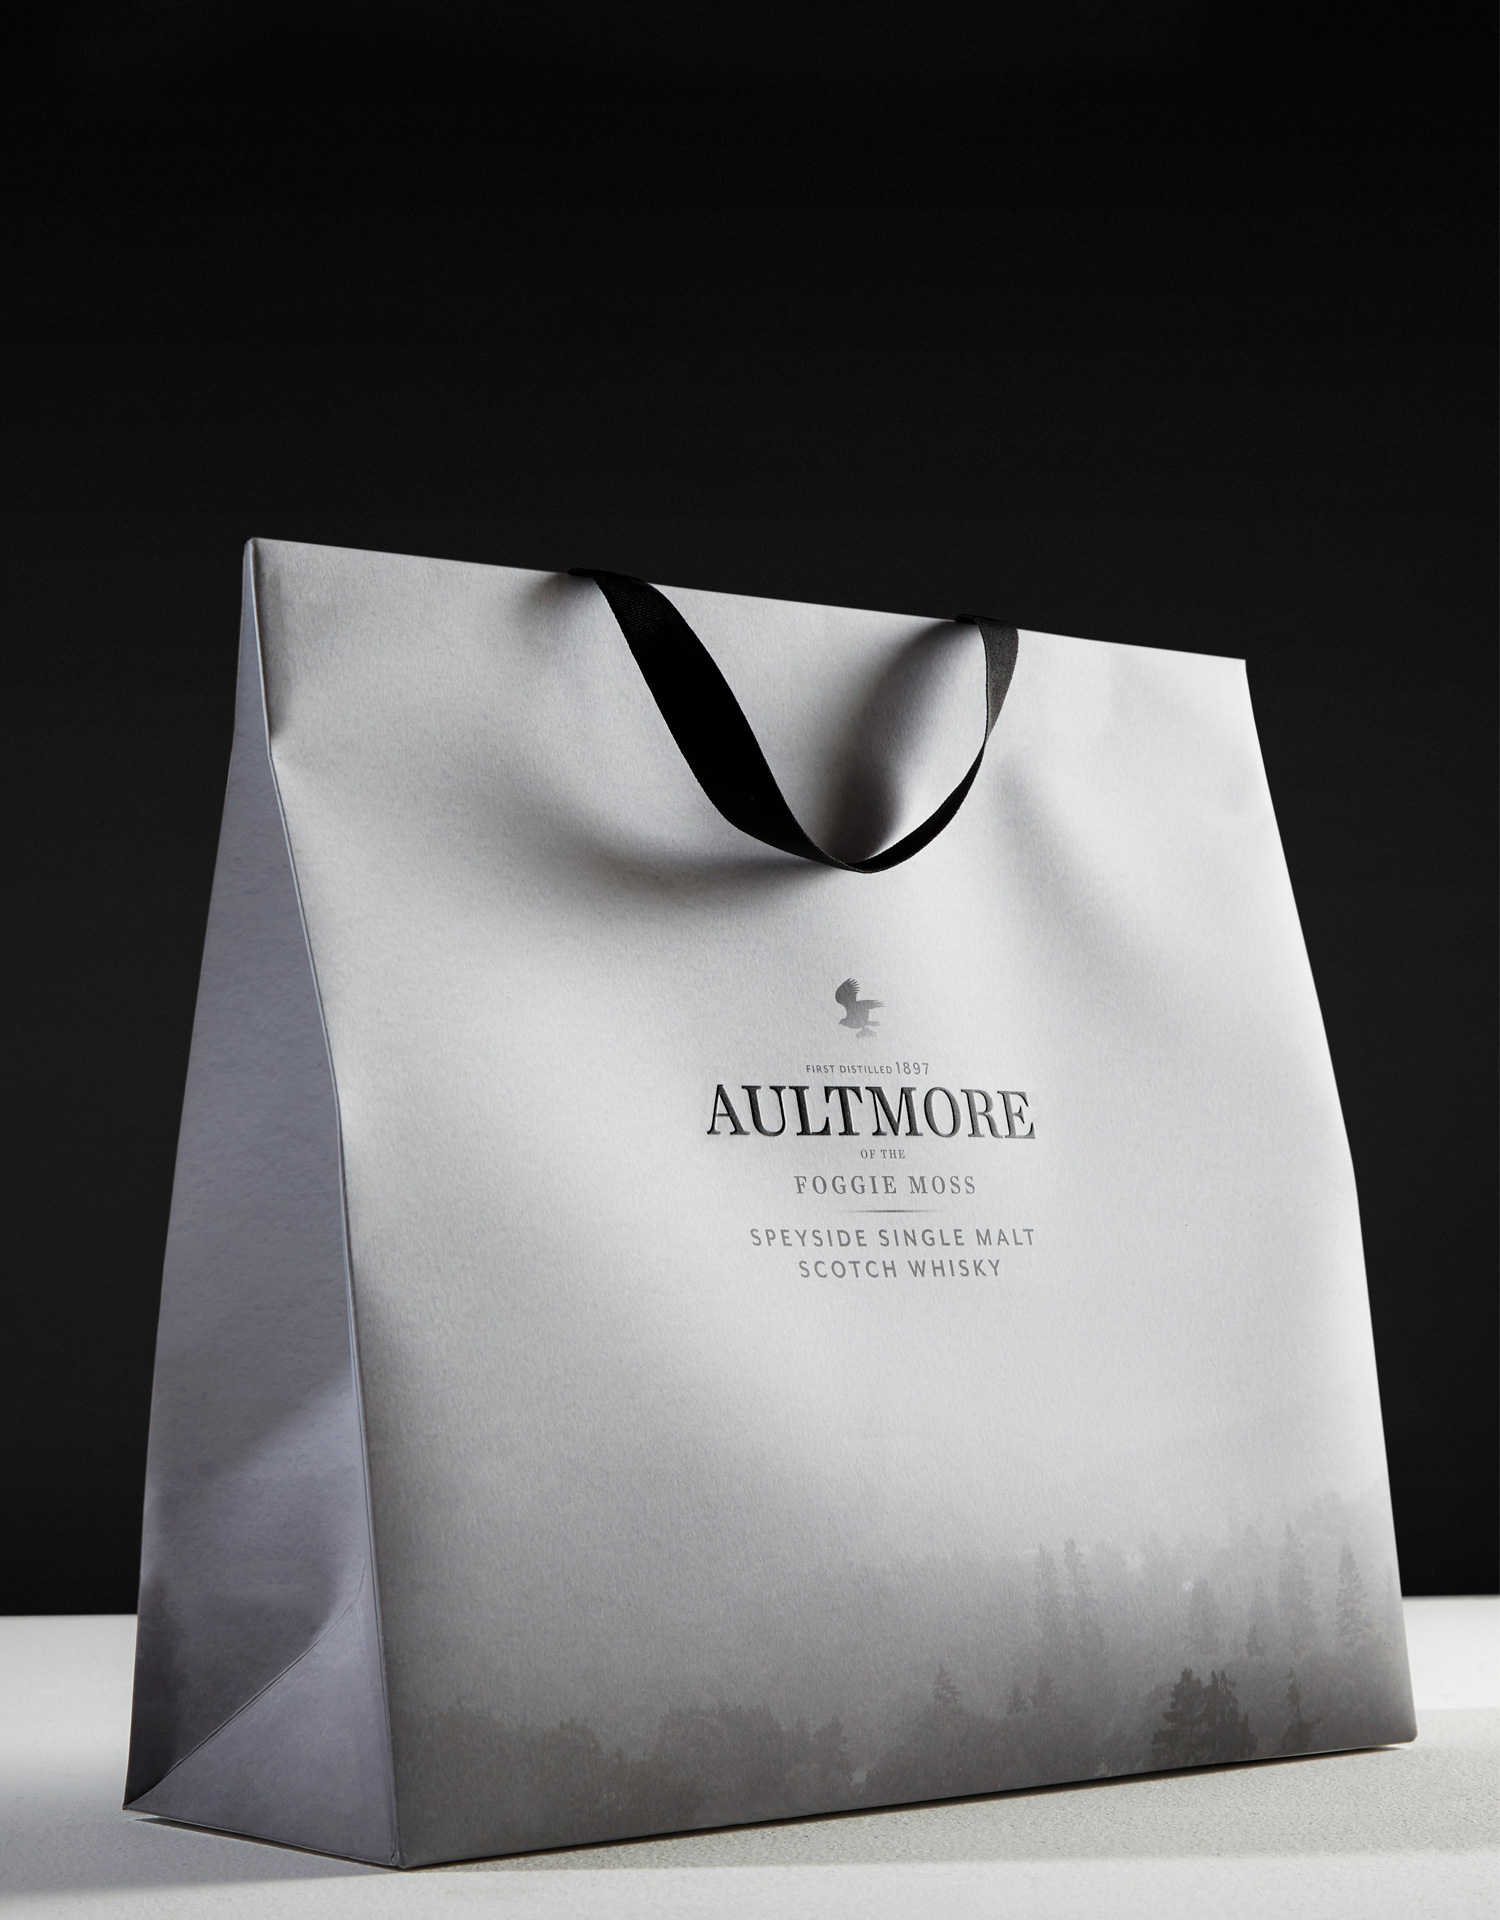 Progress Packaging Aultmore Retail Drinks Carrier Bags Drinks Printing Litho Whisky